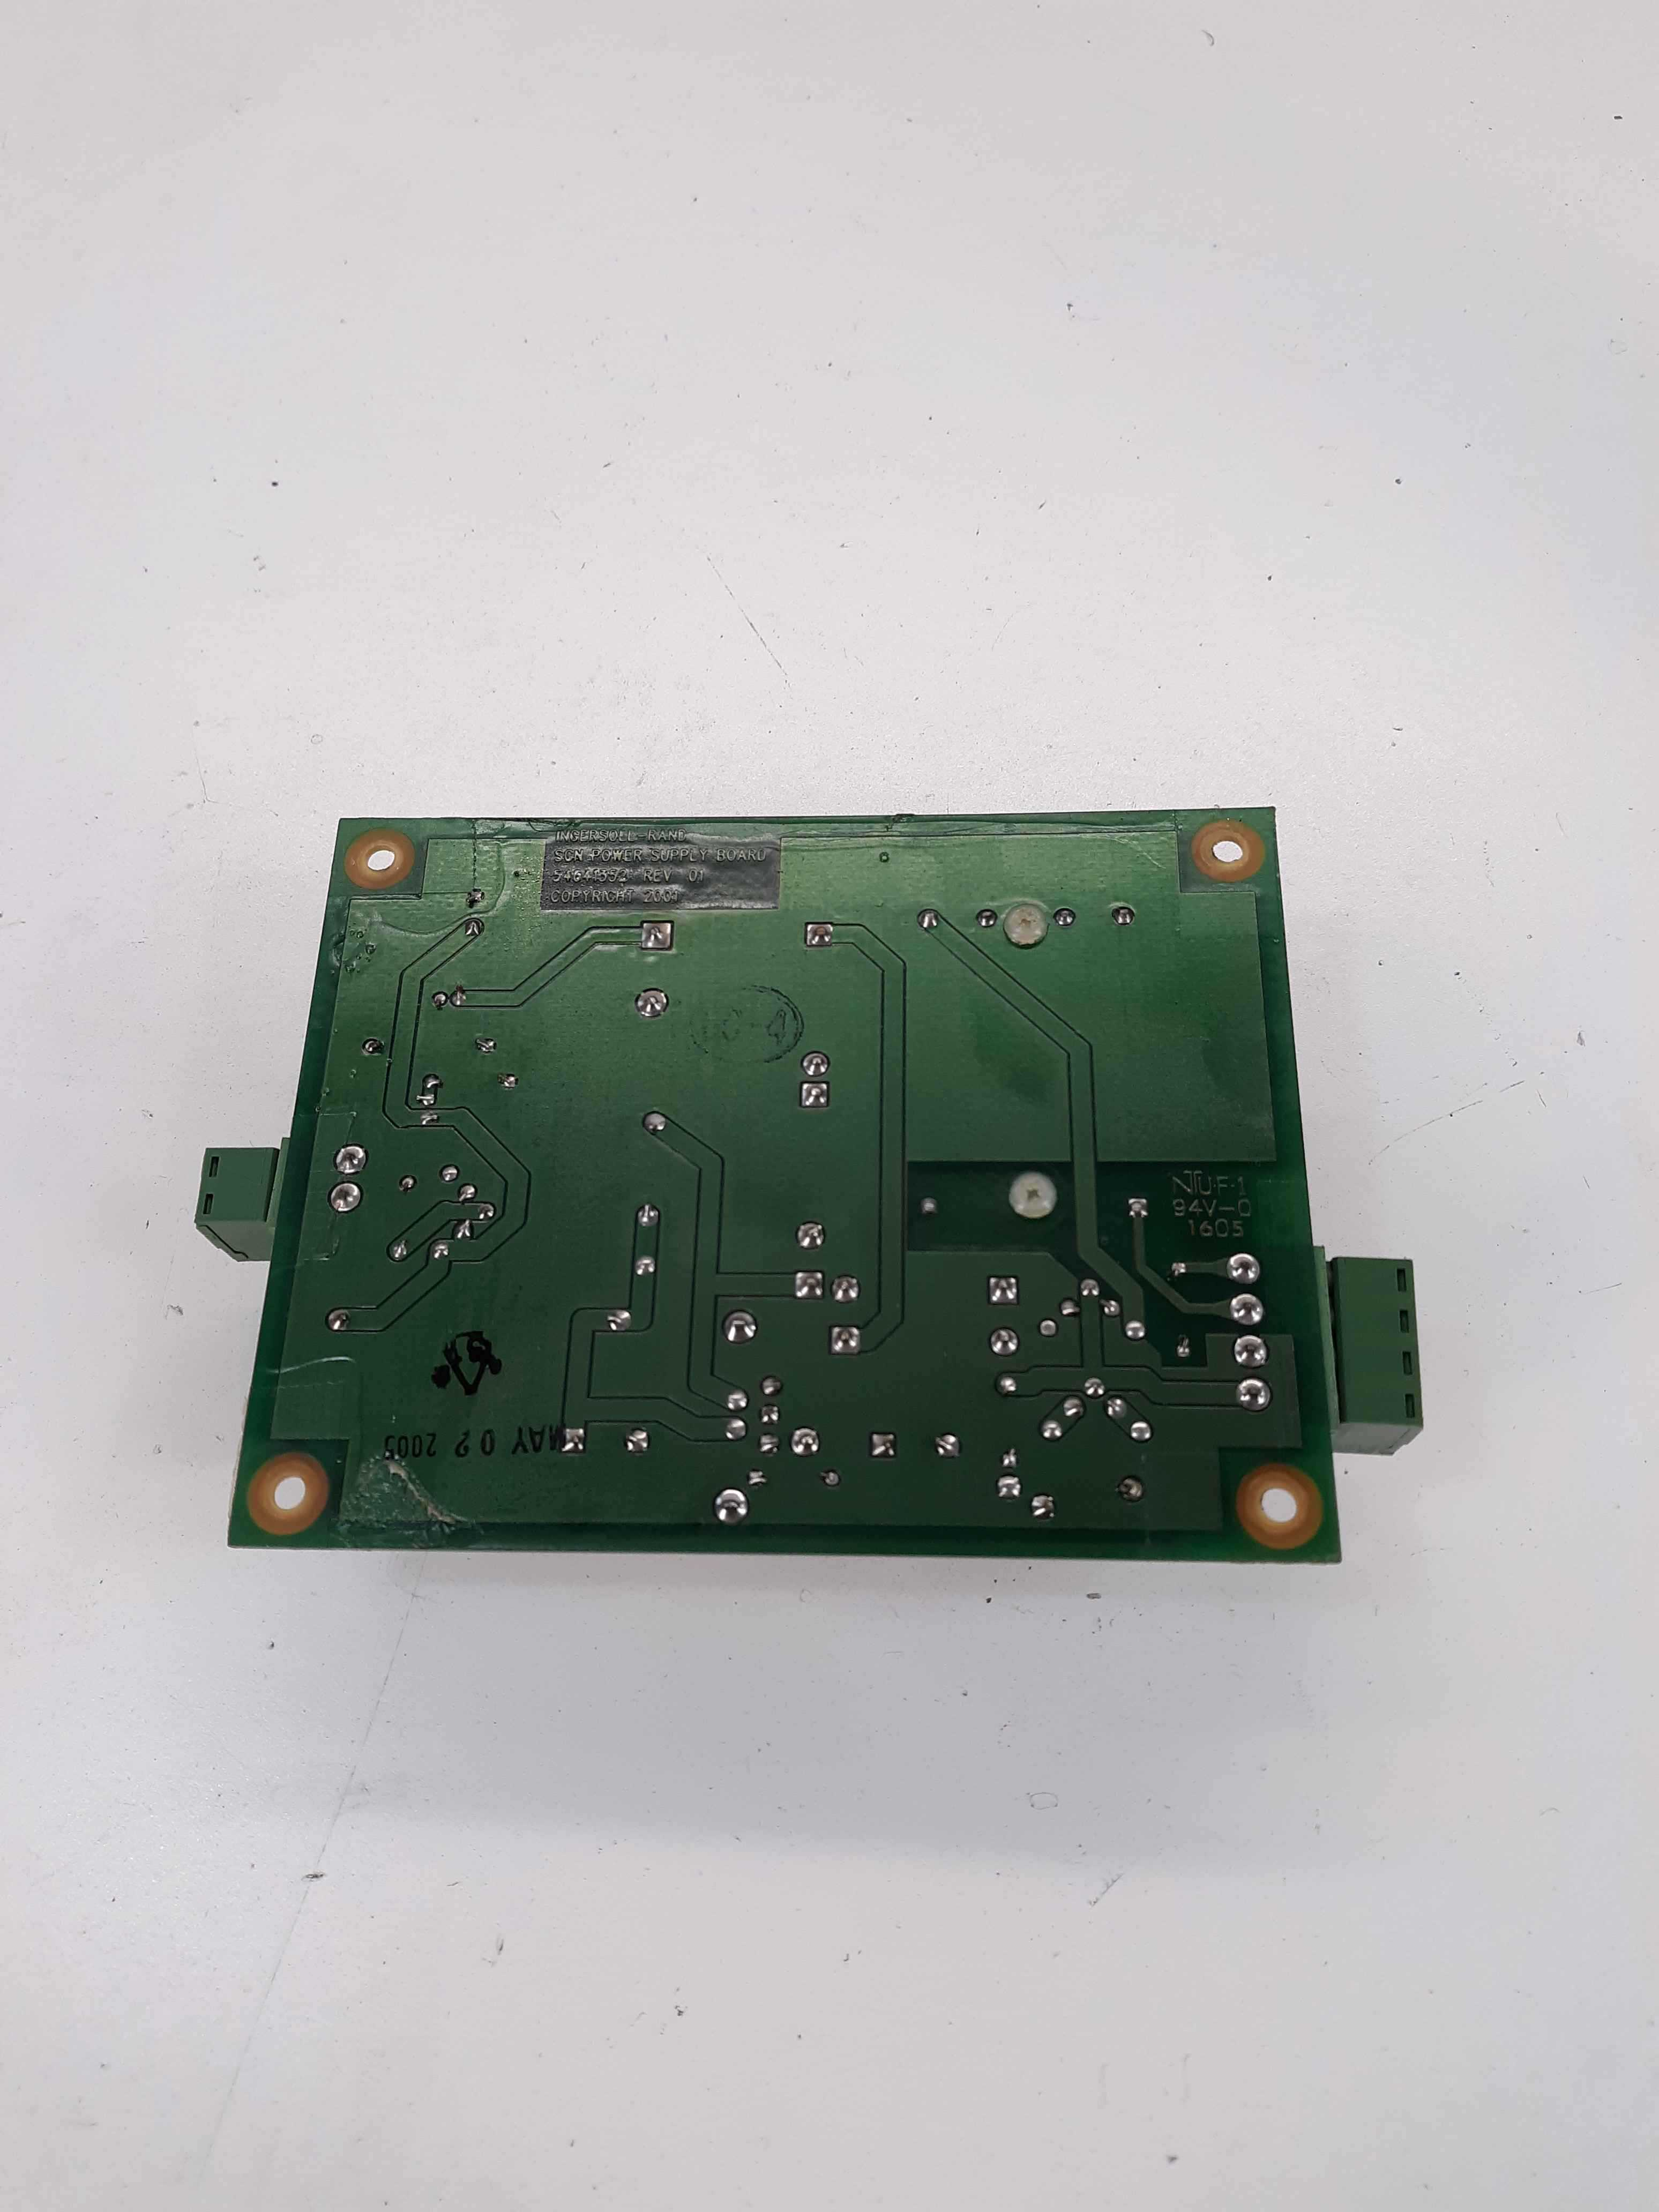 Ingersoll Rand 54641337 rev.01 SGN Power Supply Board